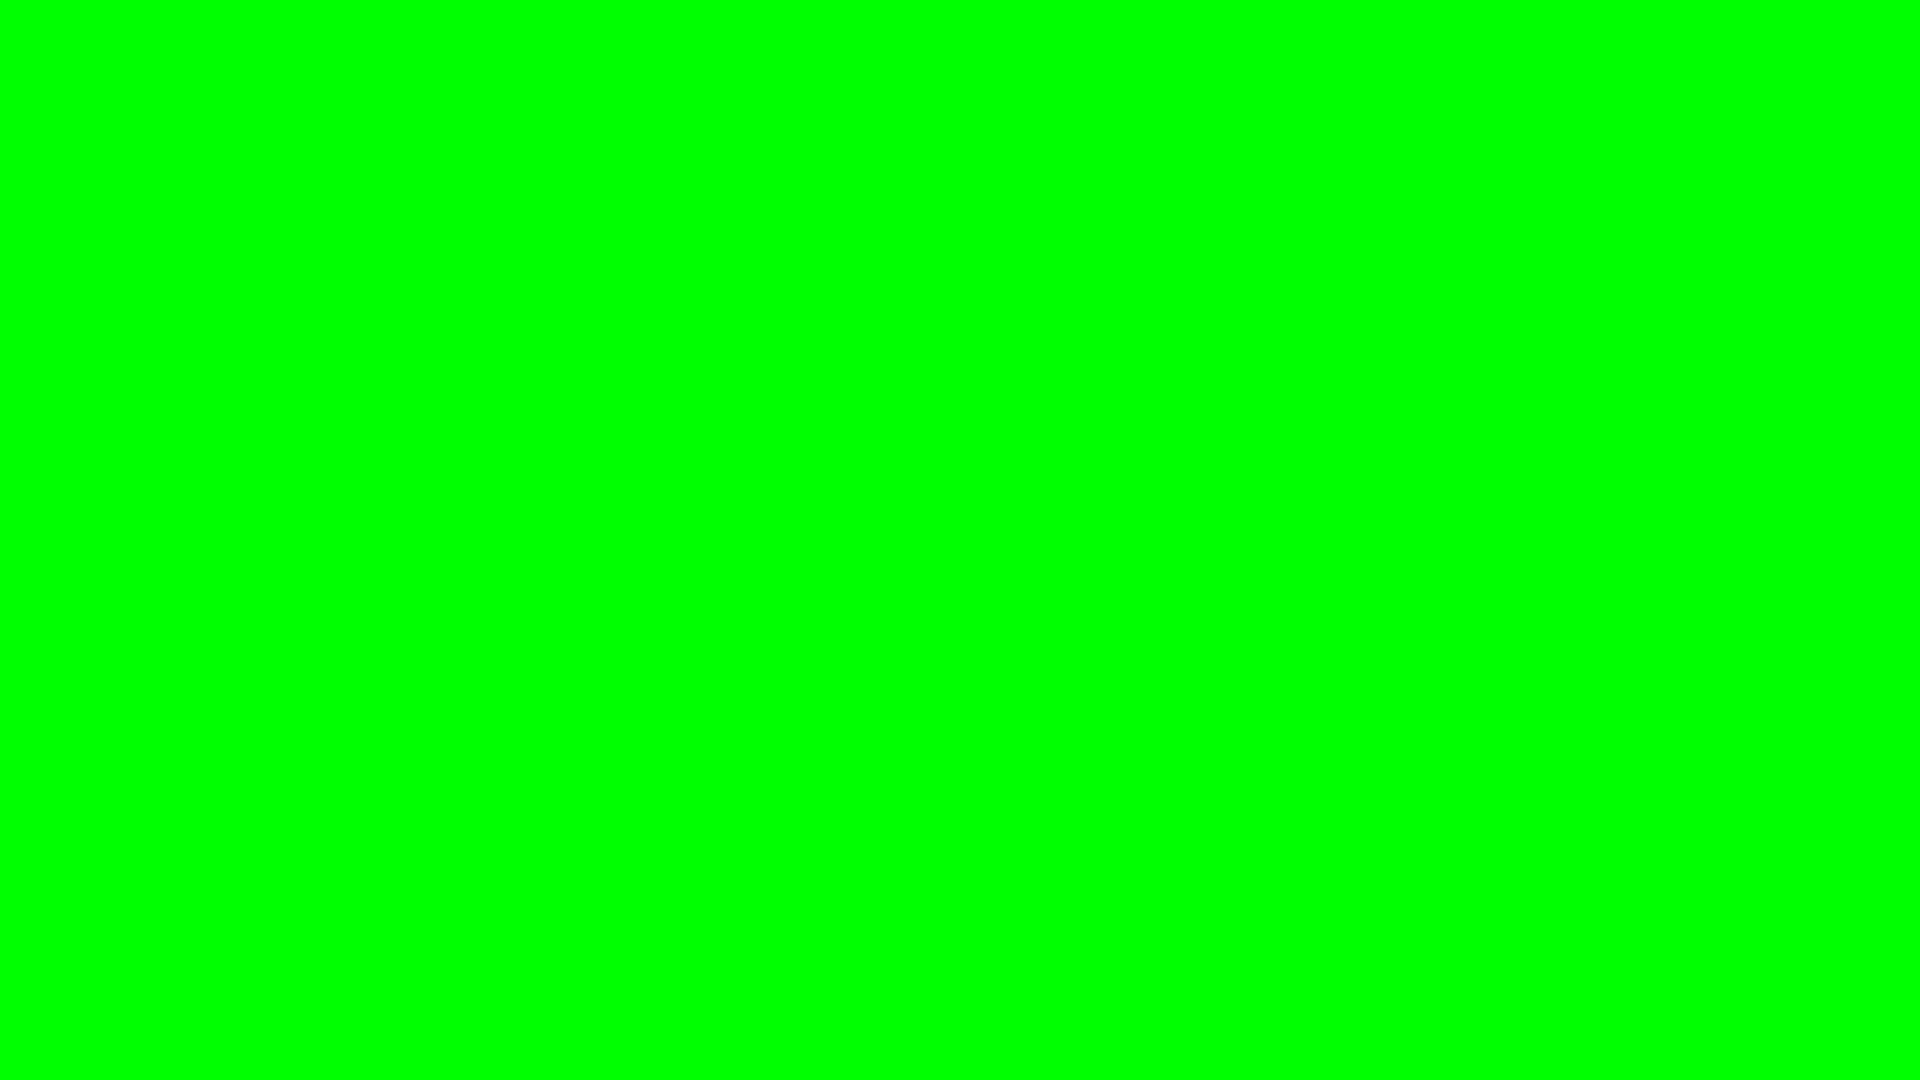 Web colors lime - 1920x1080 Lime Web Green Solid Color Background